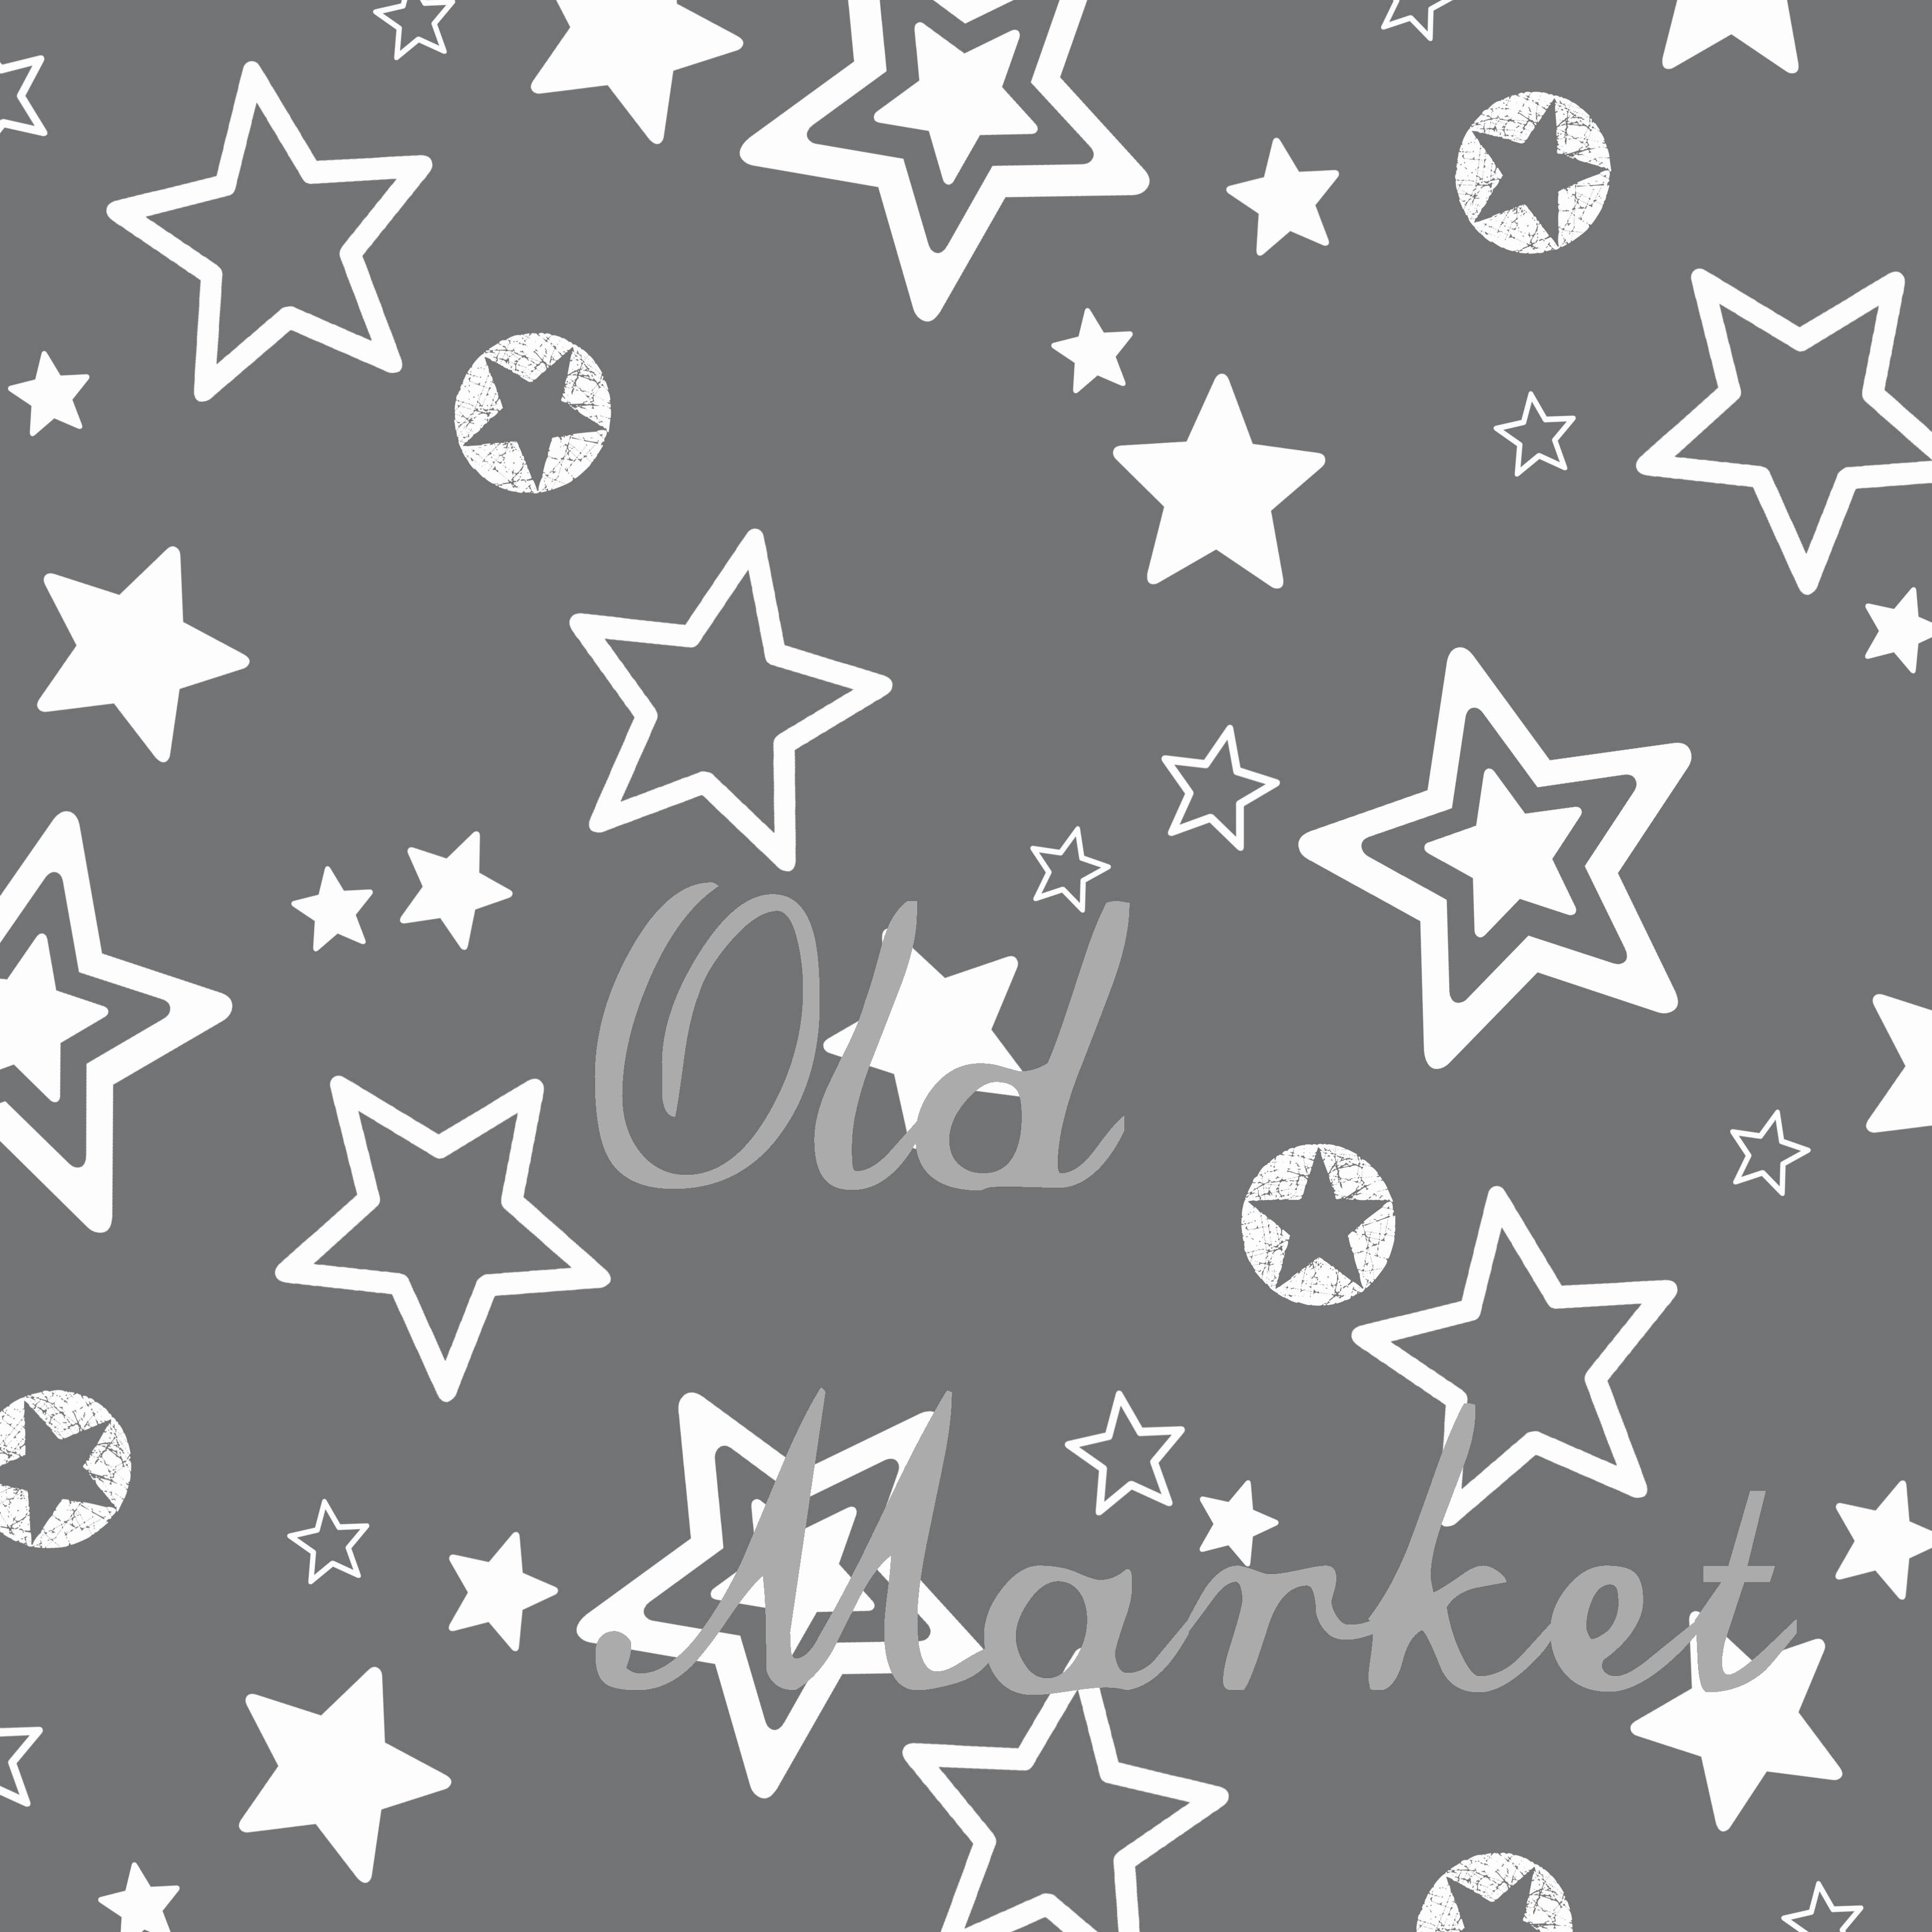 Gray Digital Paper Patterns Graphic Backgrounds By oldmarketdesigns - Image 2